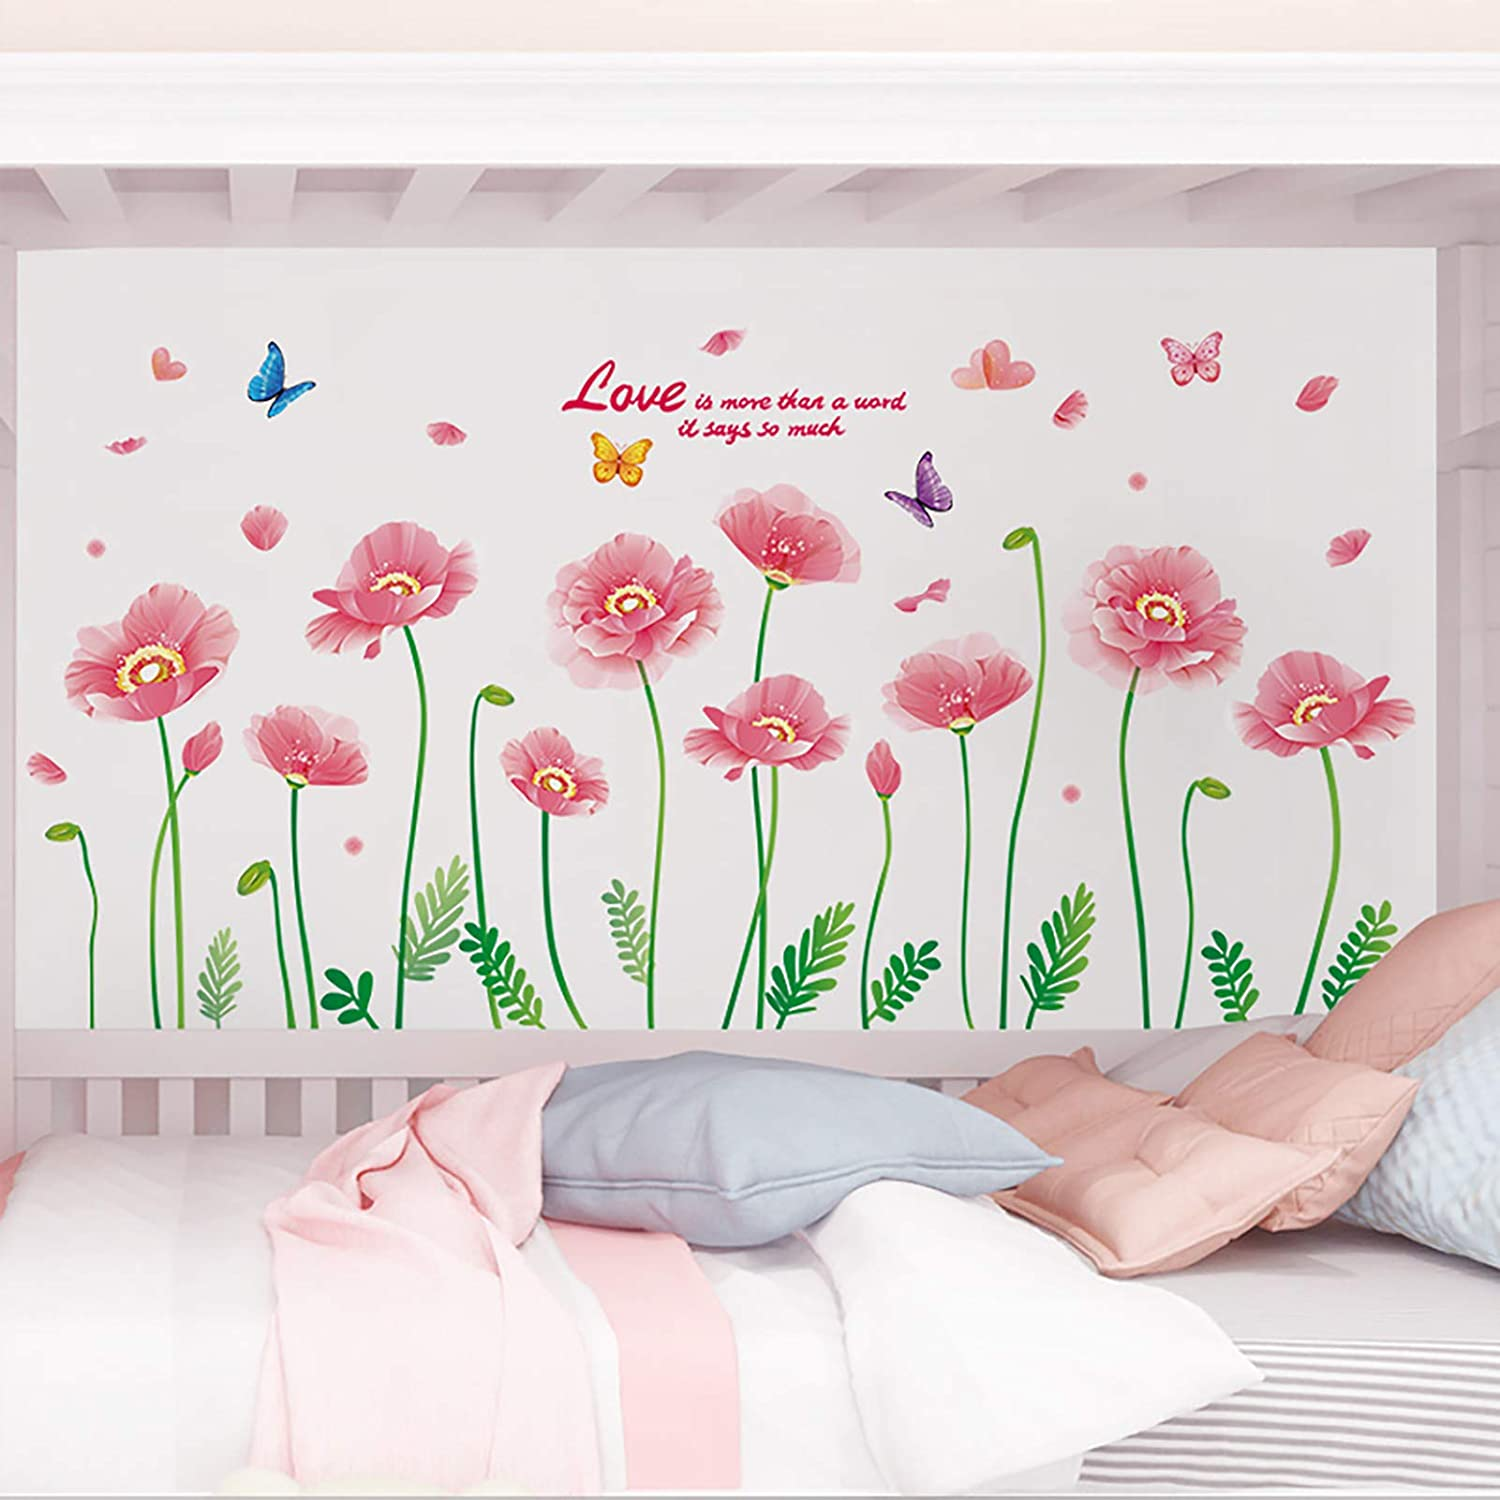 Vibrant Poppy Flowers Vines Wall Decals, SMFANLIN Removable Poppies Floral Peel and Stick Wall Stickers, Garden Plant Art Murals Posters Decor for Kids Baby Bedroom Bathroom Living Room Home (Pink)